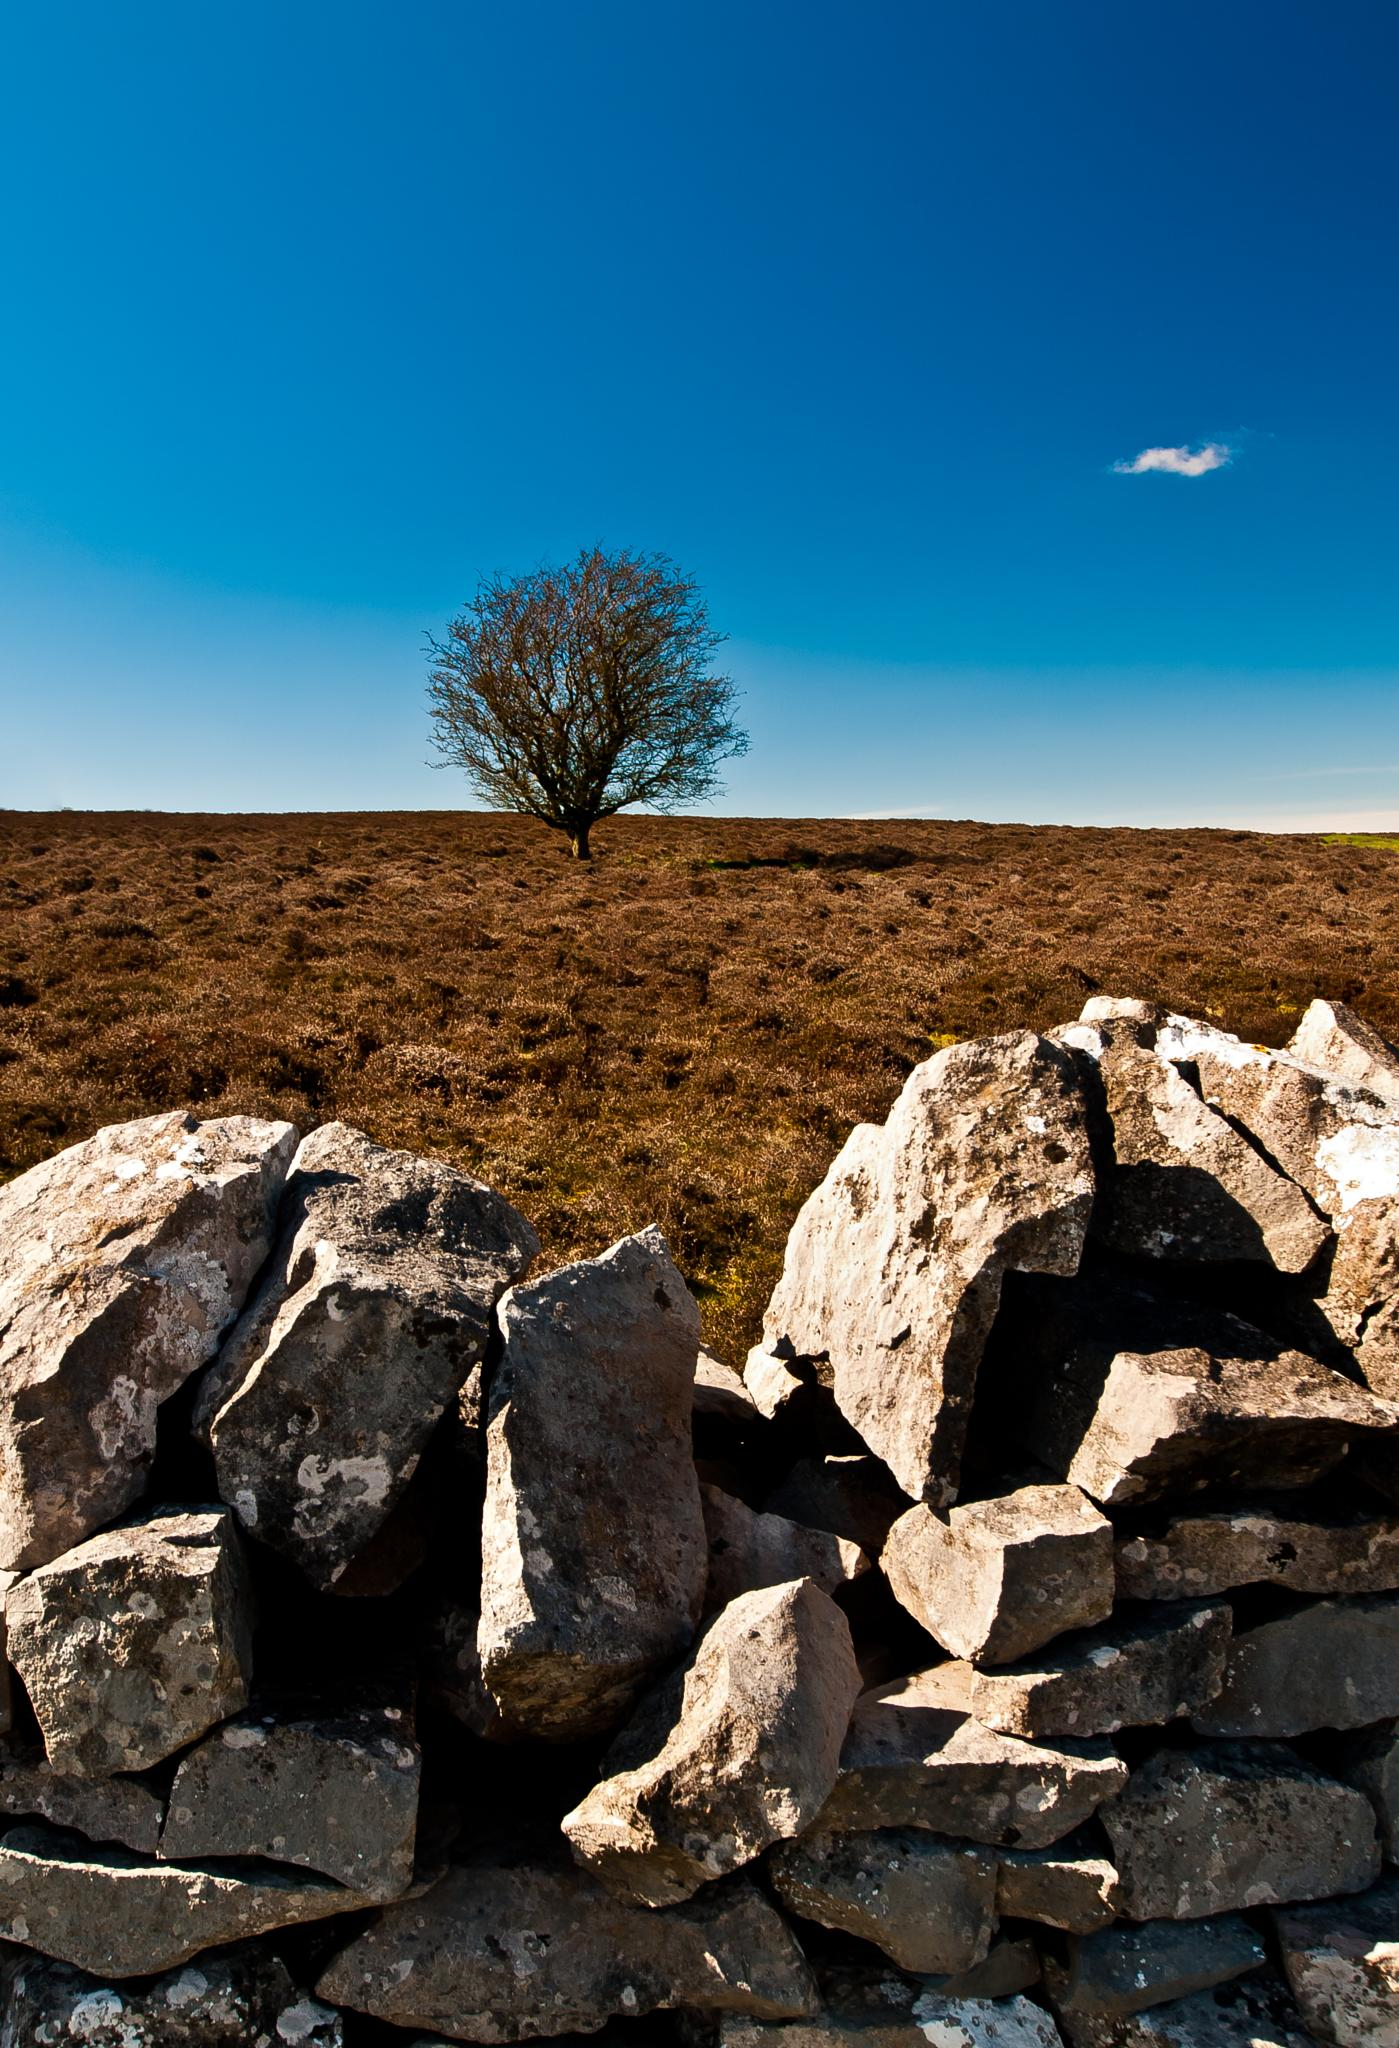 Dry stone wall by Peter Edwardo Vicente.